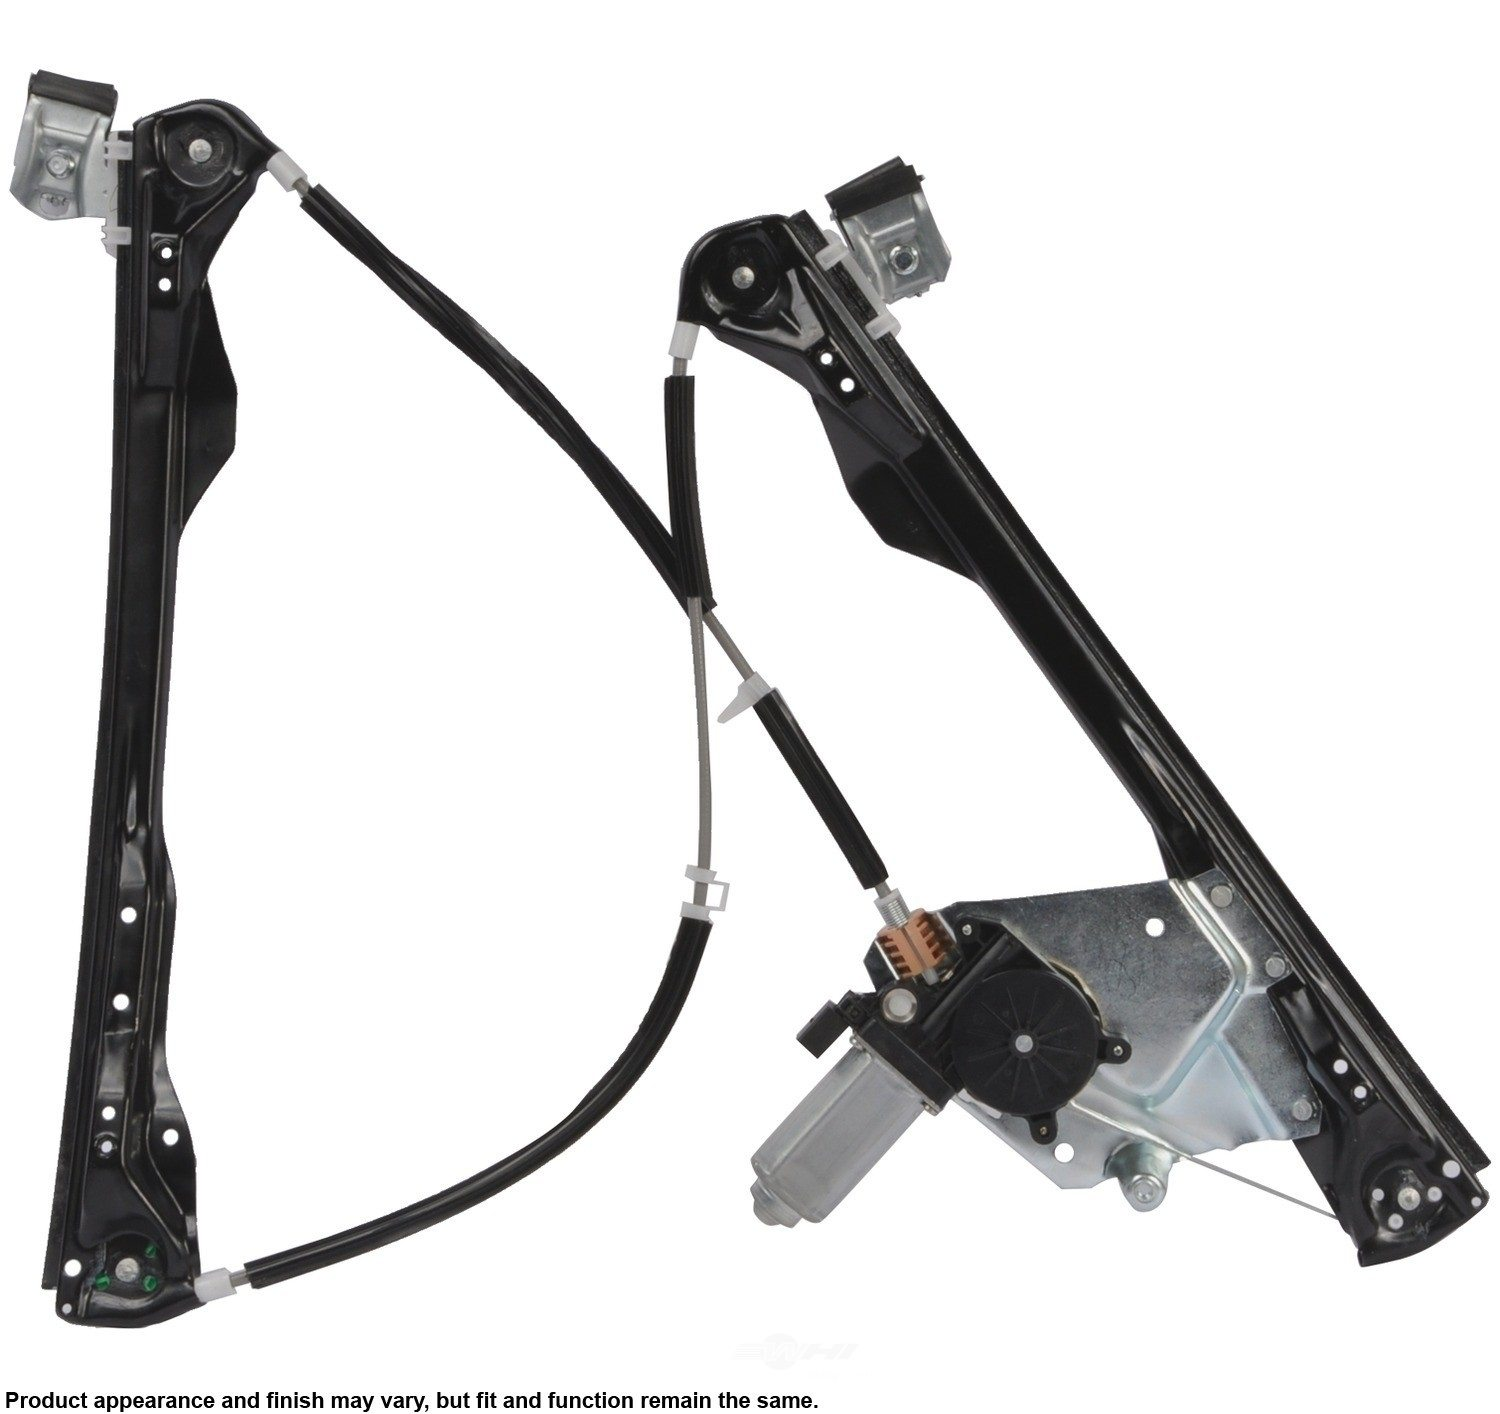 CARDONE NEW - Power Window Motor And Regulator Assembly (Front Left) - A1S 82-3005AR